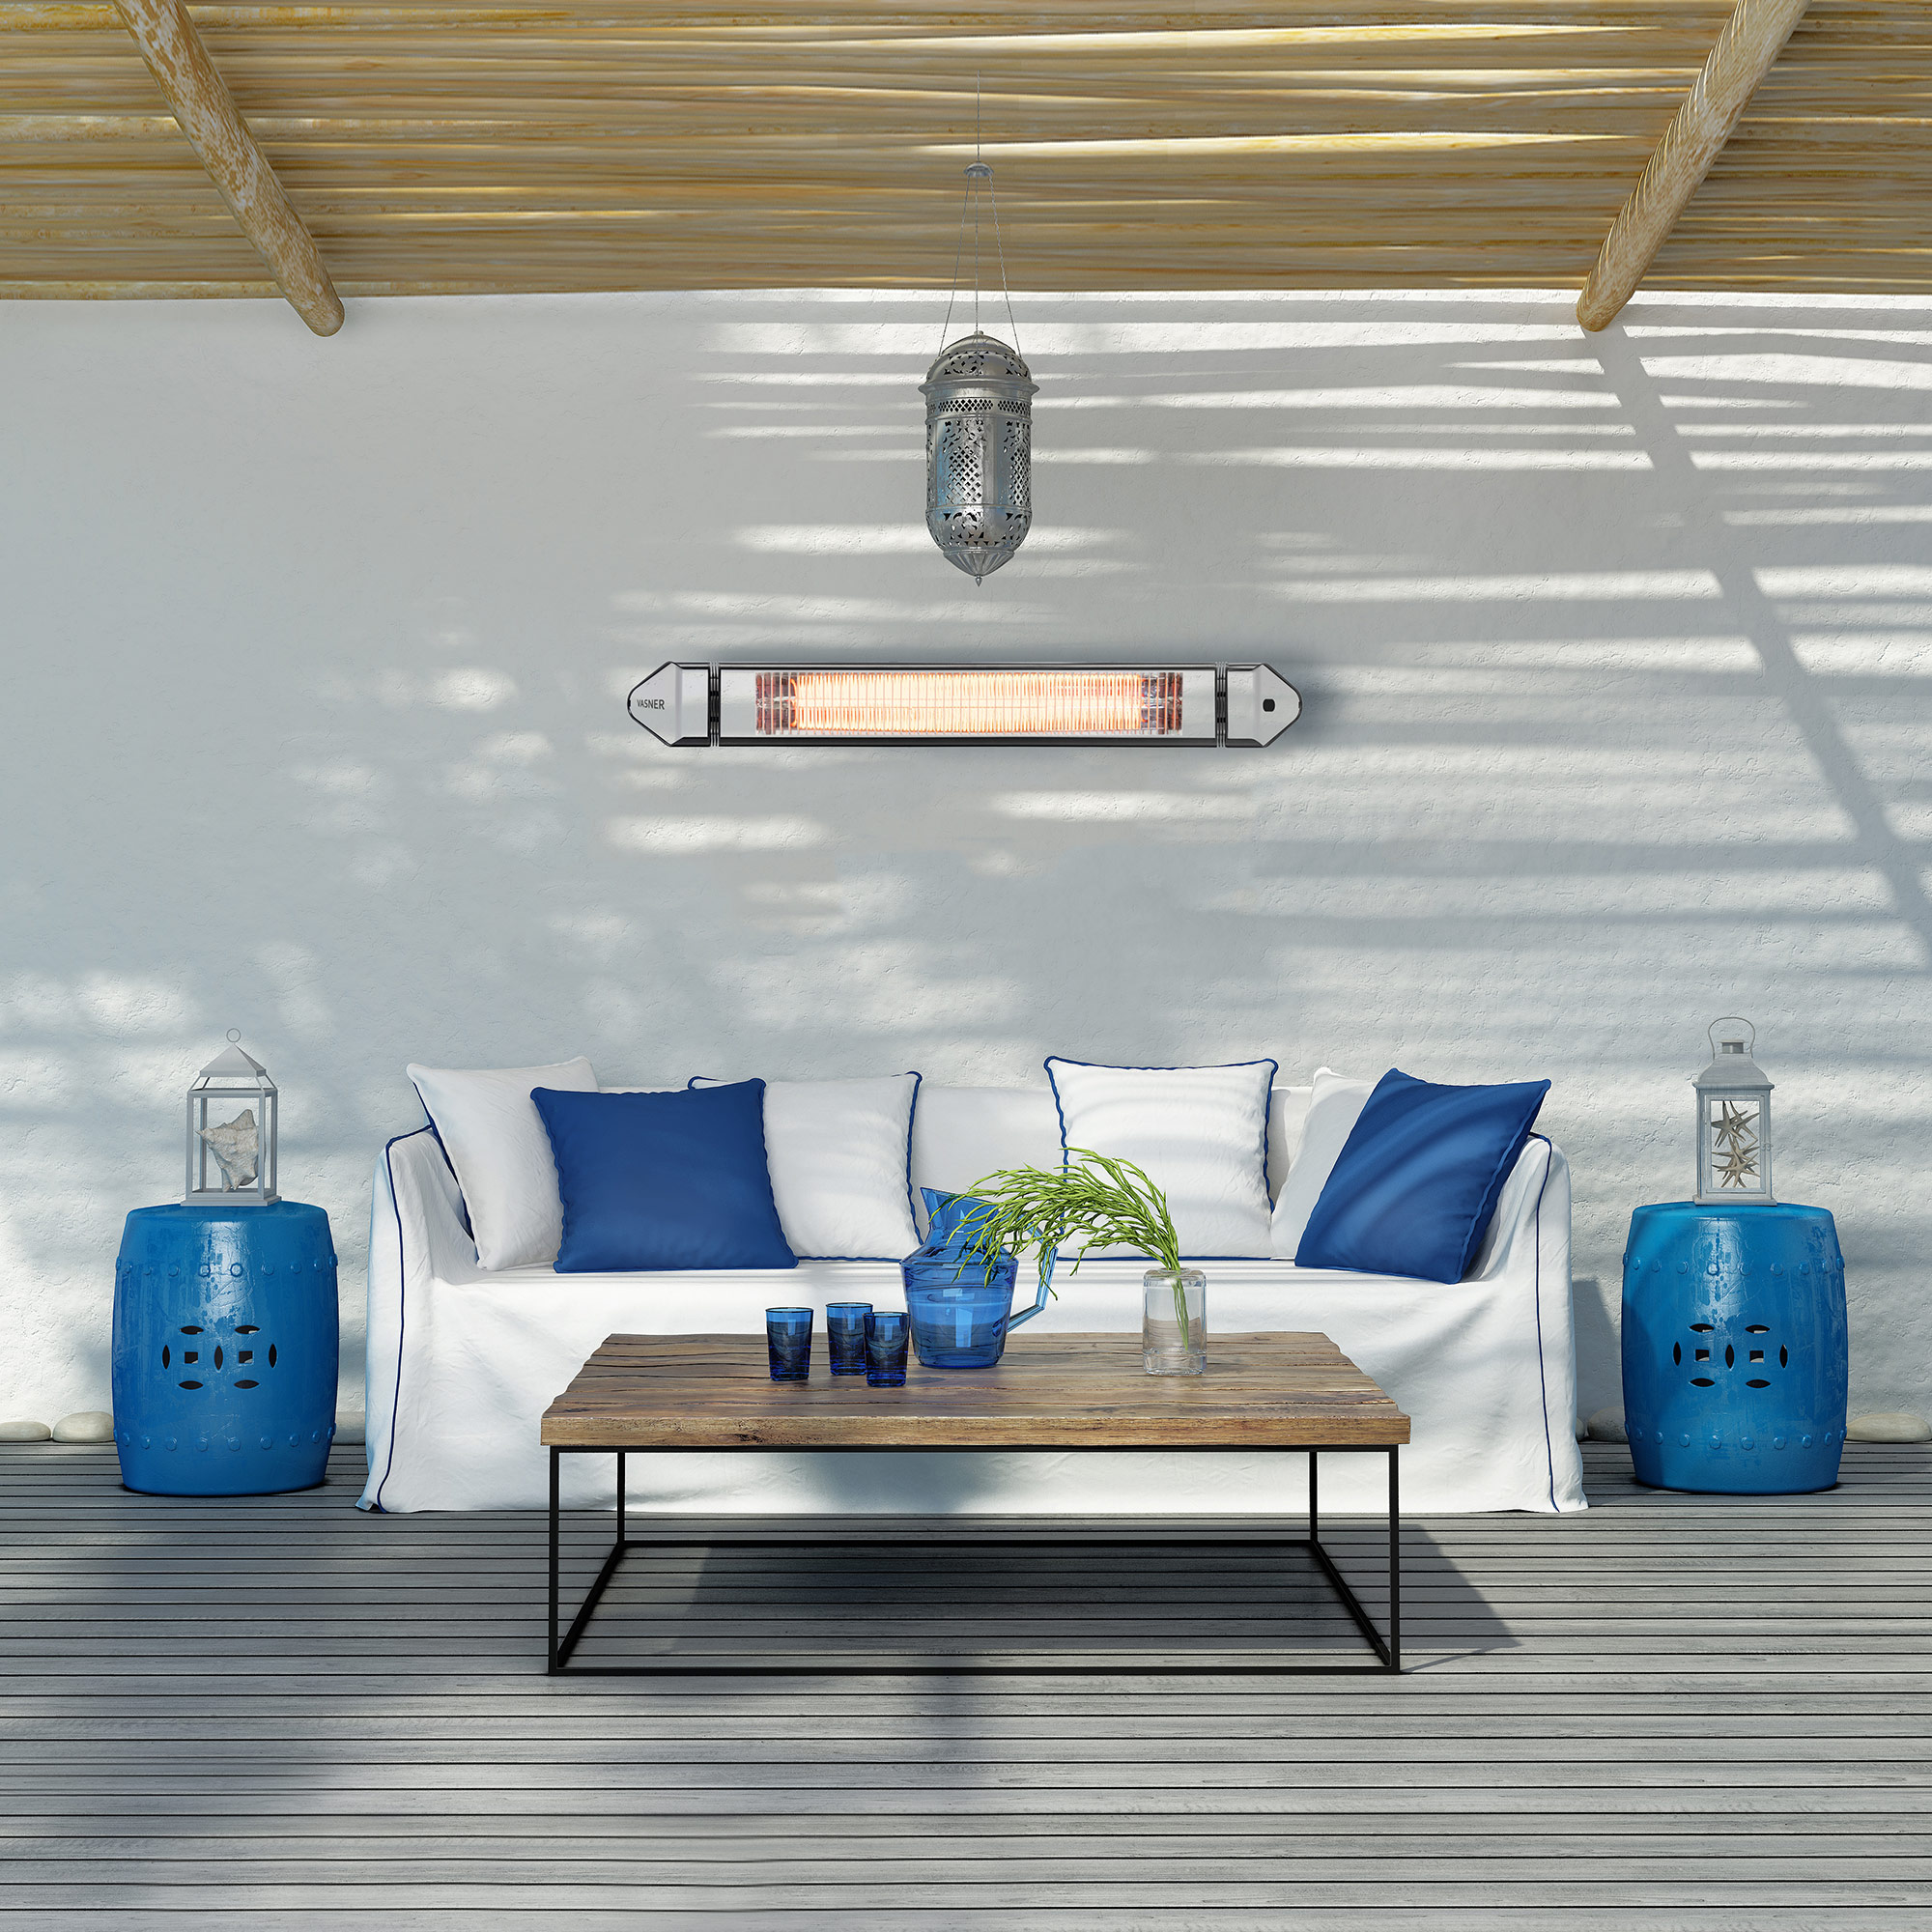 Electric patio heater infrared 2500 watts